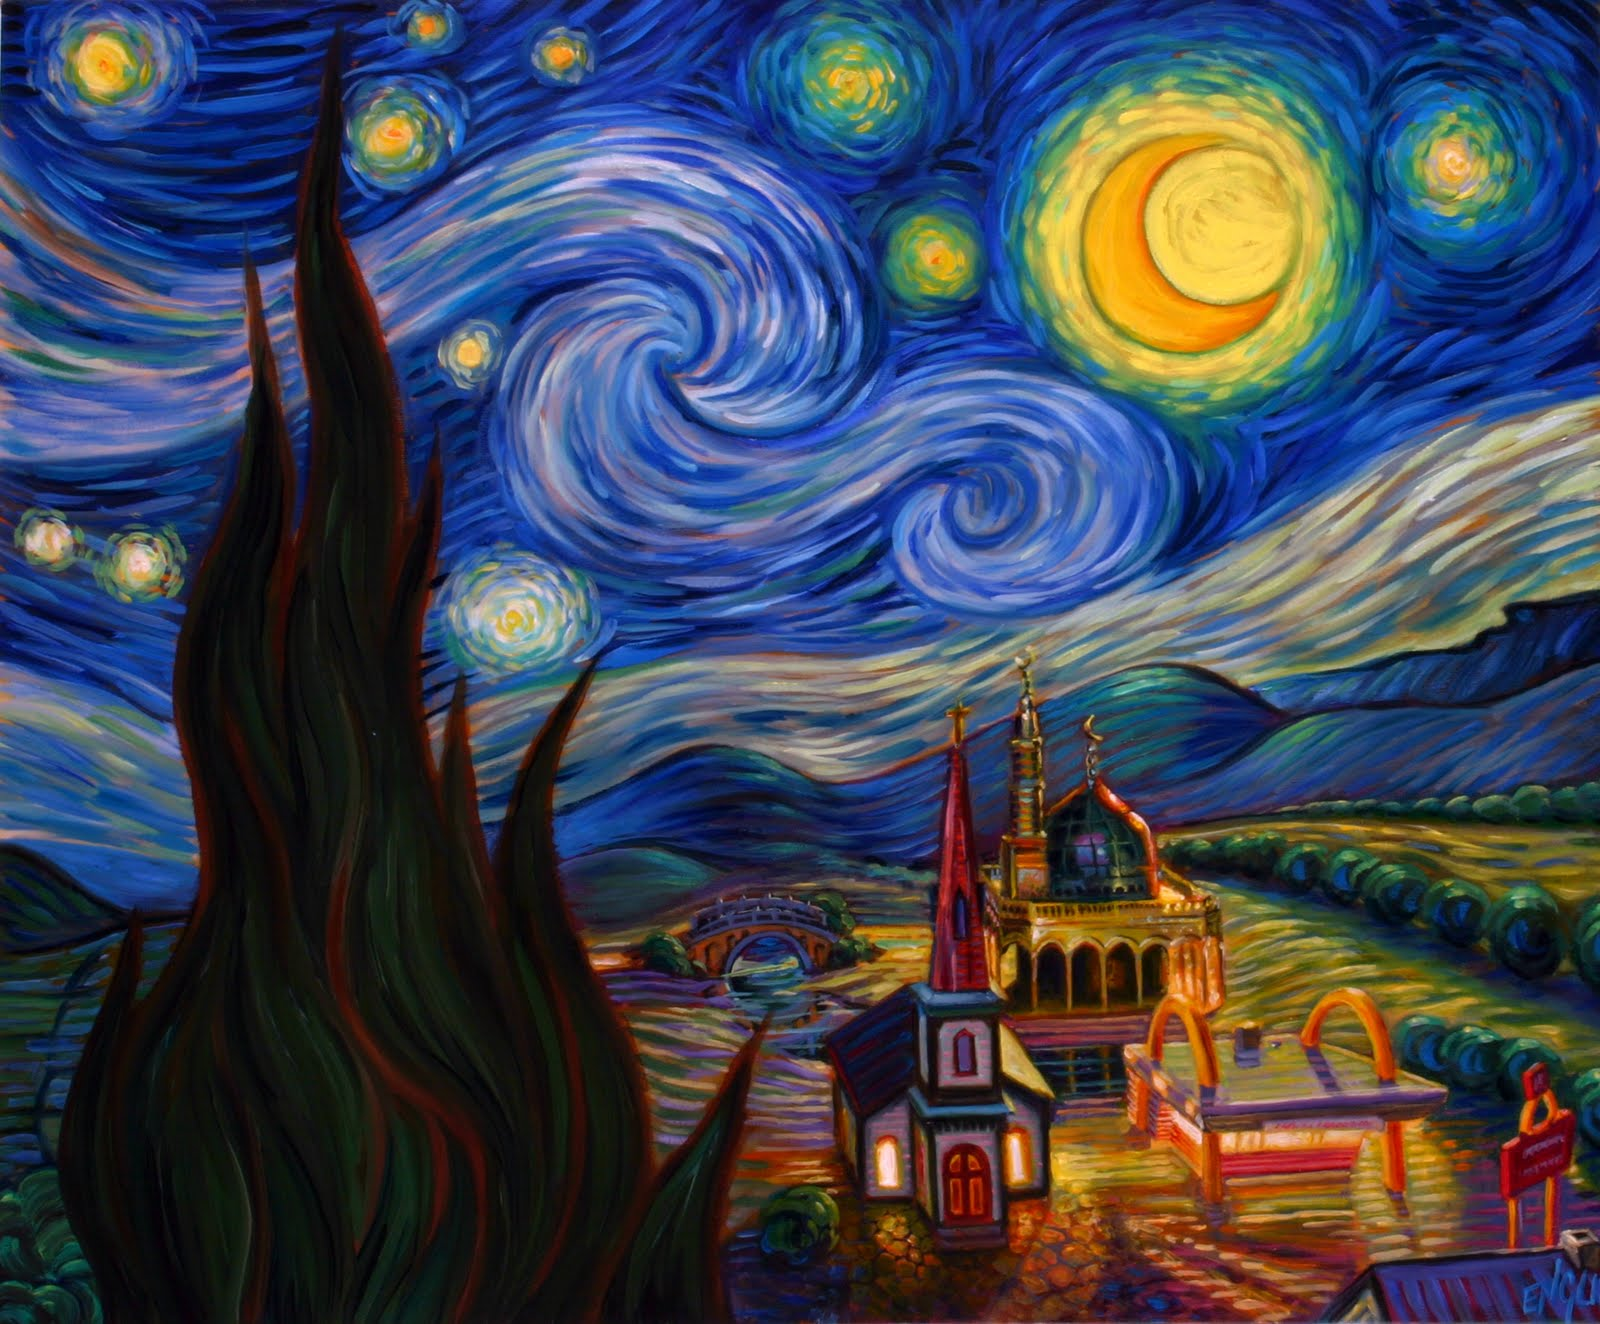 The Starry Night - Wikipedia